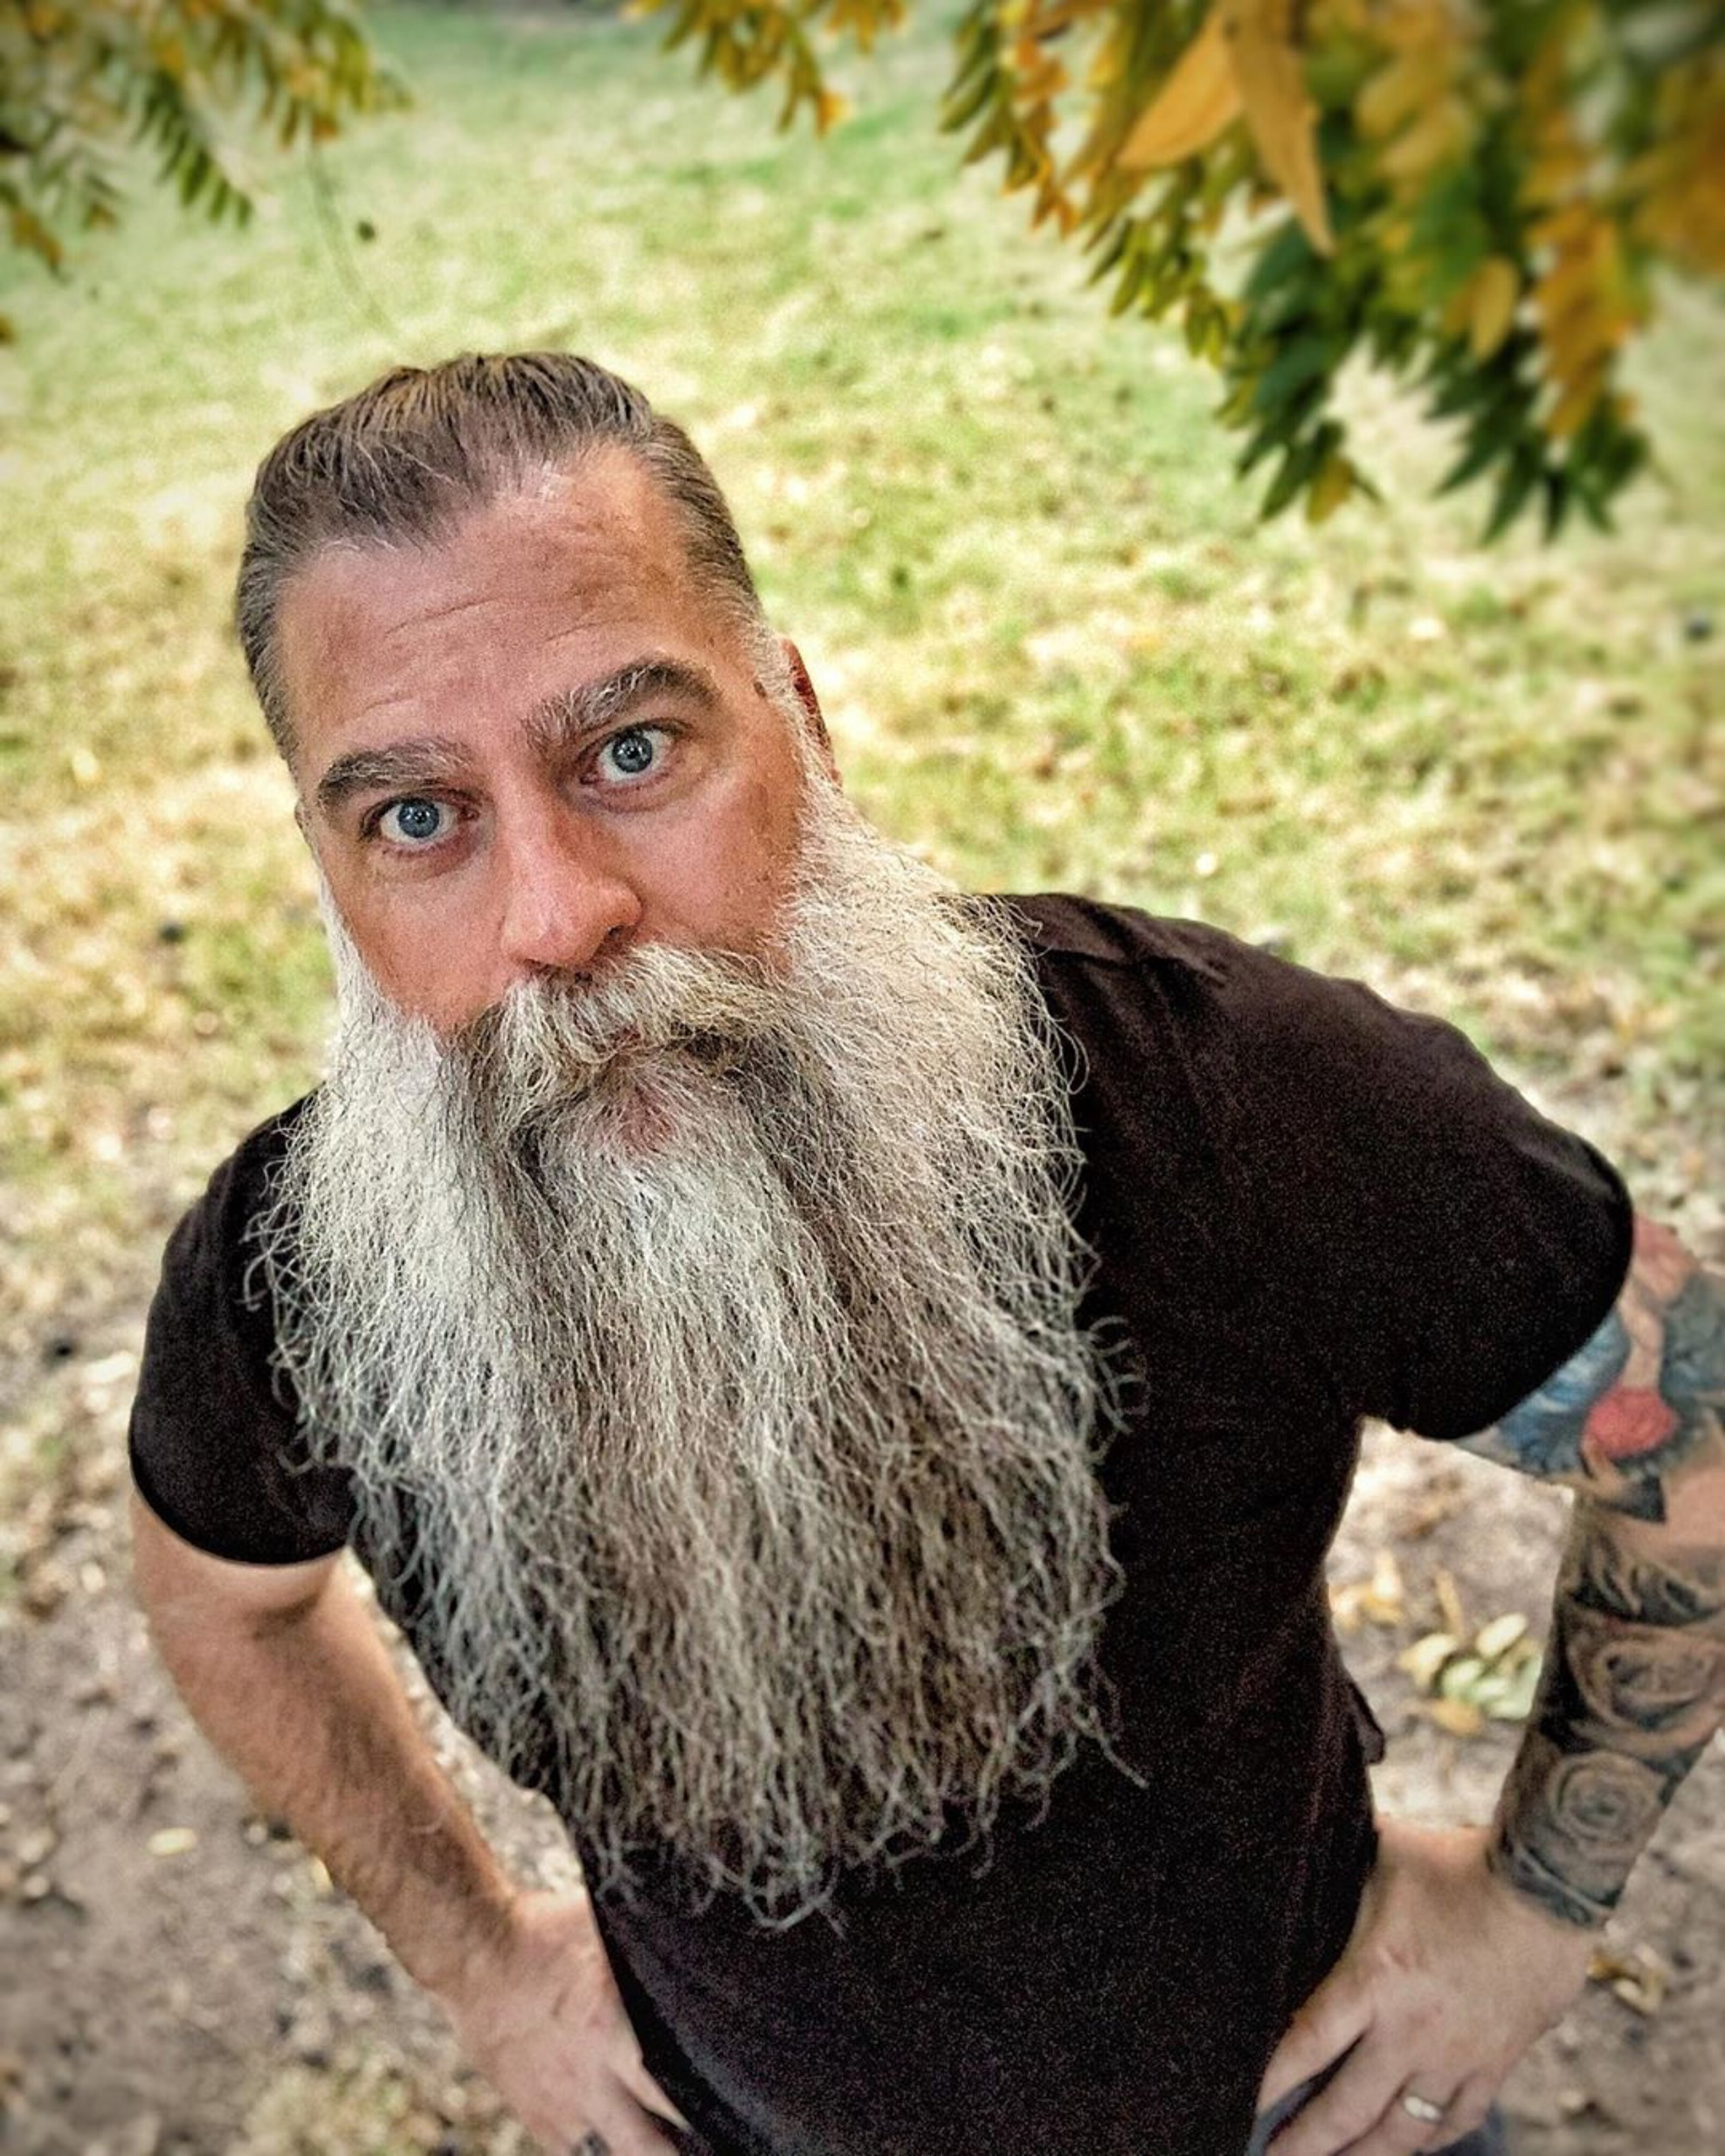 A long full beard style for males.